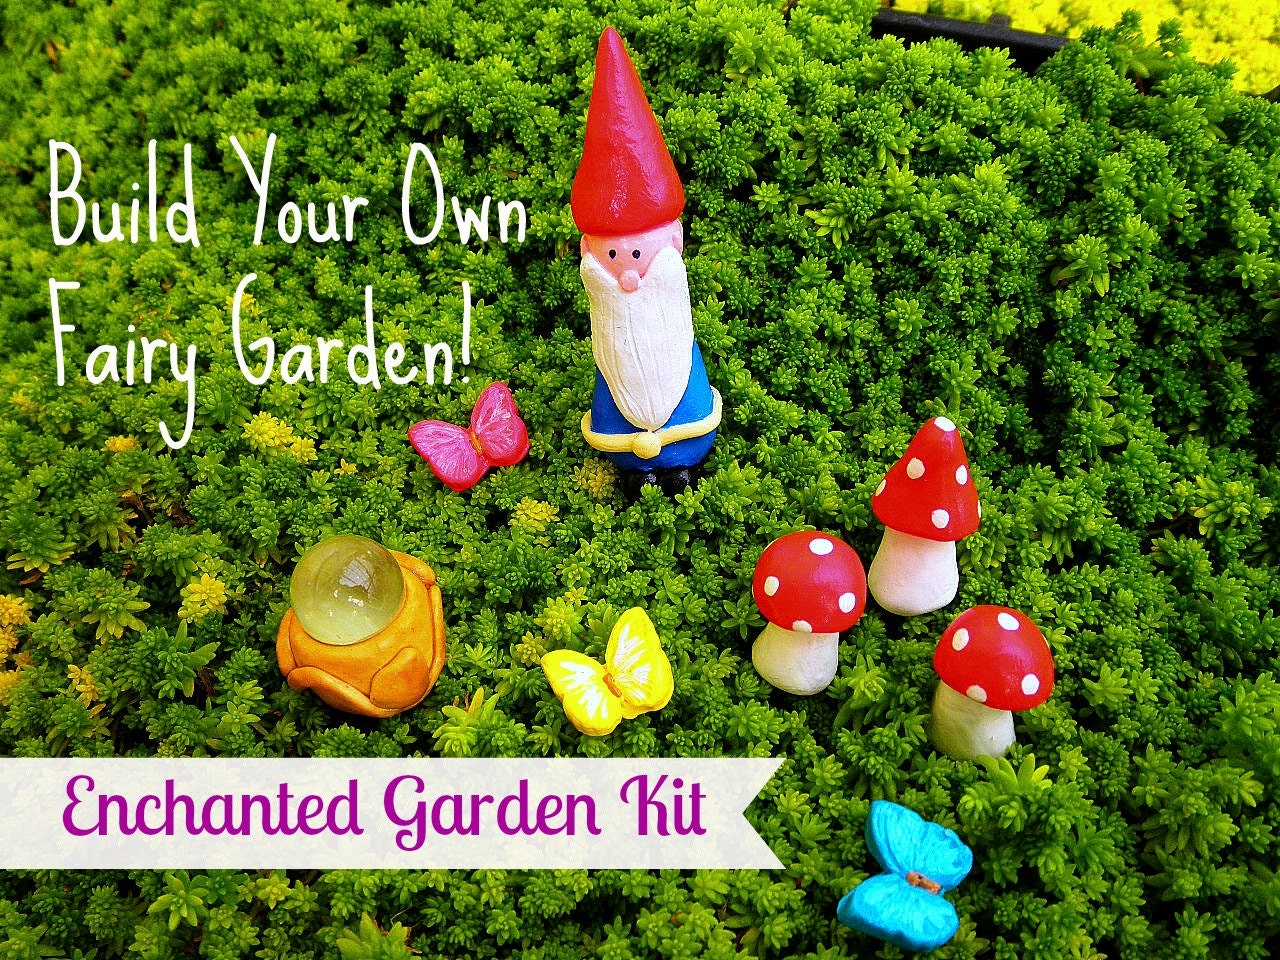 Build Your Own Fairy Garden Kit with gnome by BlueMallard on Etsy